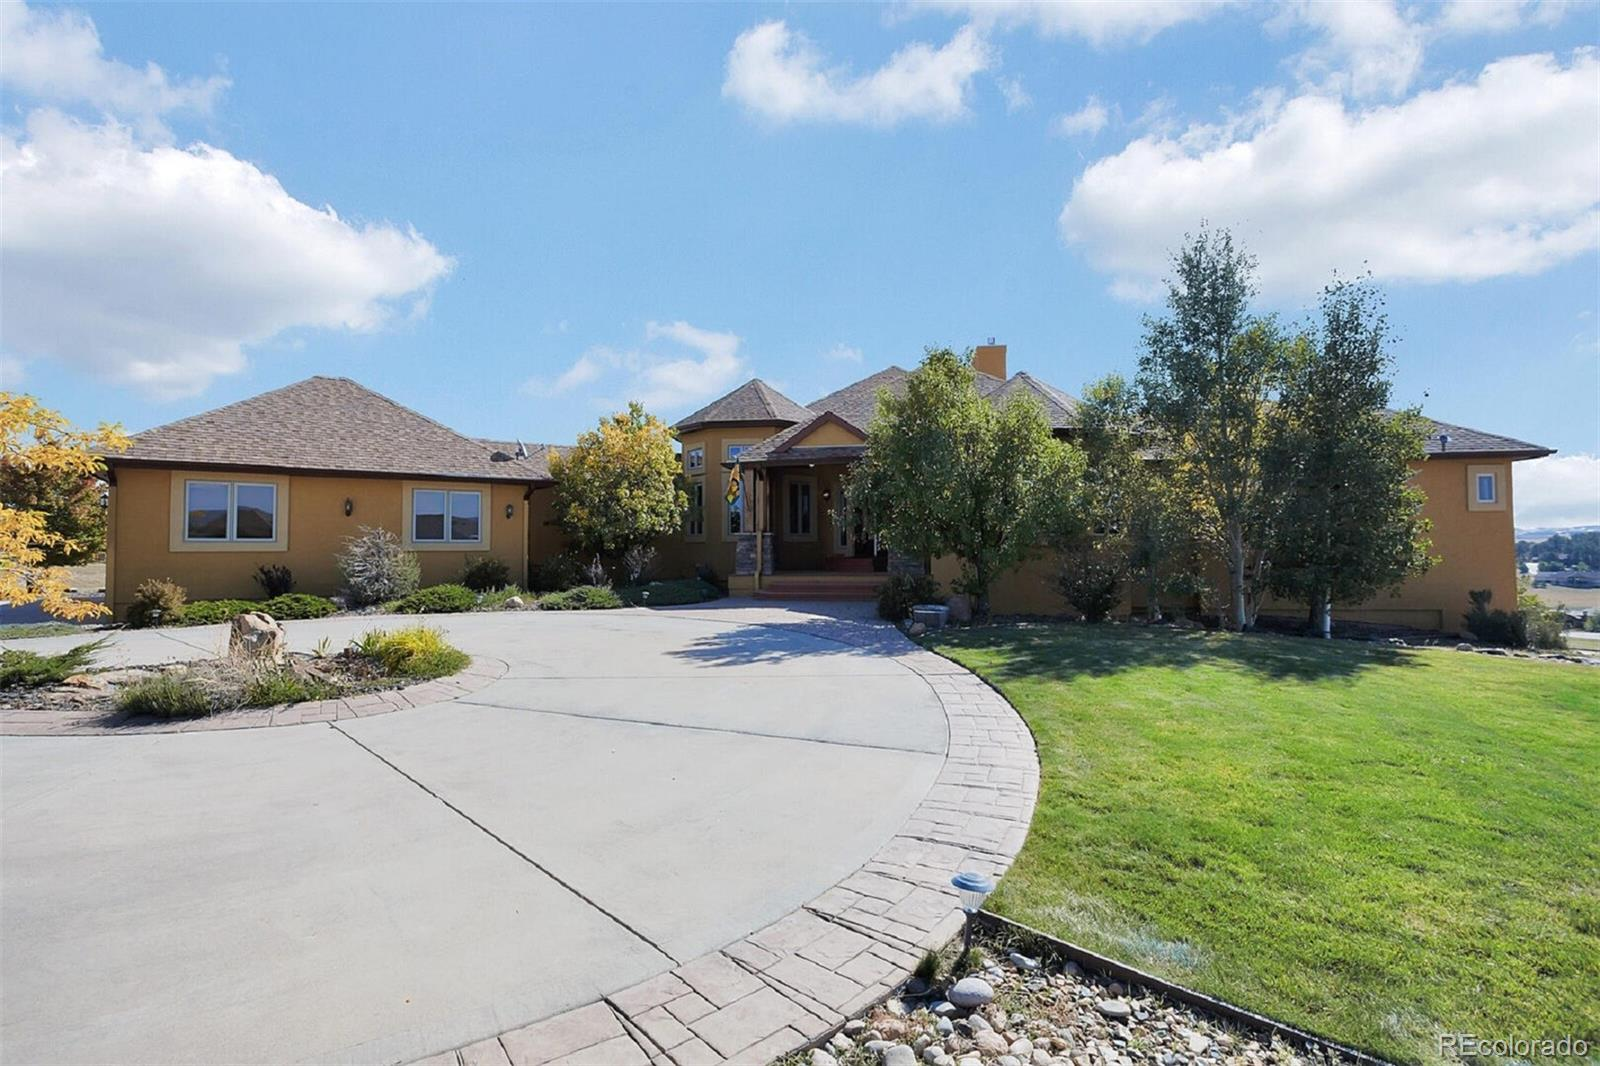 Don't miss this incredible Kings Deer Home with spectacular Pikes Peak views.  Great home for entertaining with amazing indoor and outdoor spaces including a Bocci Ball Court.  It has everything you will ever need, 5 bedrooms, 7 bathrooms, 3-car garage, 2.5 acres in golf-course community. Double-Door entry, large rooms, 3 fireplaces--one is a floor-to-ceiling stone fireplace. Built-in entertainment center, wet bar, trex decking, butler's pantry, workout room with private sauna. Separate golf-cart garage. Gourmet kitchen with high-end cabinets, dovetailed built-ins. Front Range/Pikes Peak views, golf course views.